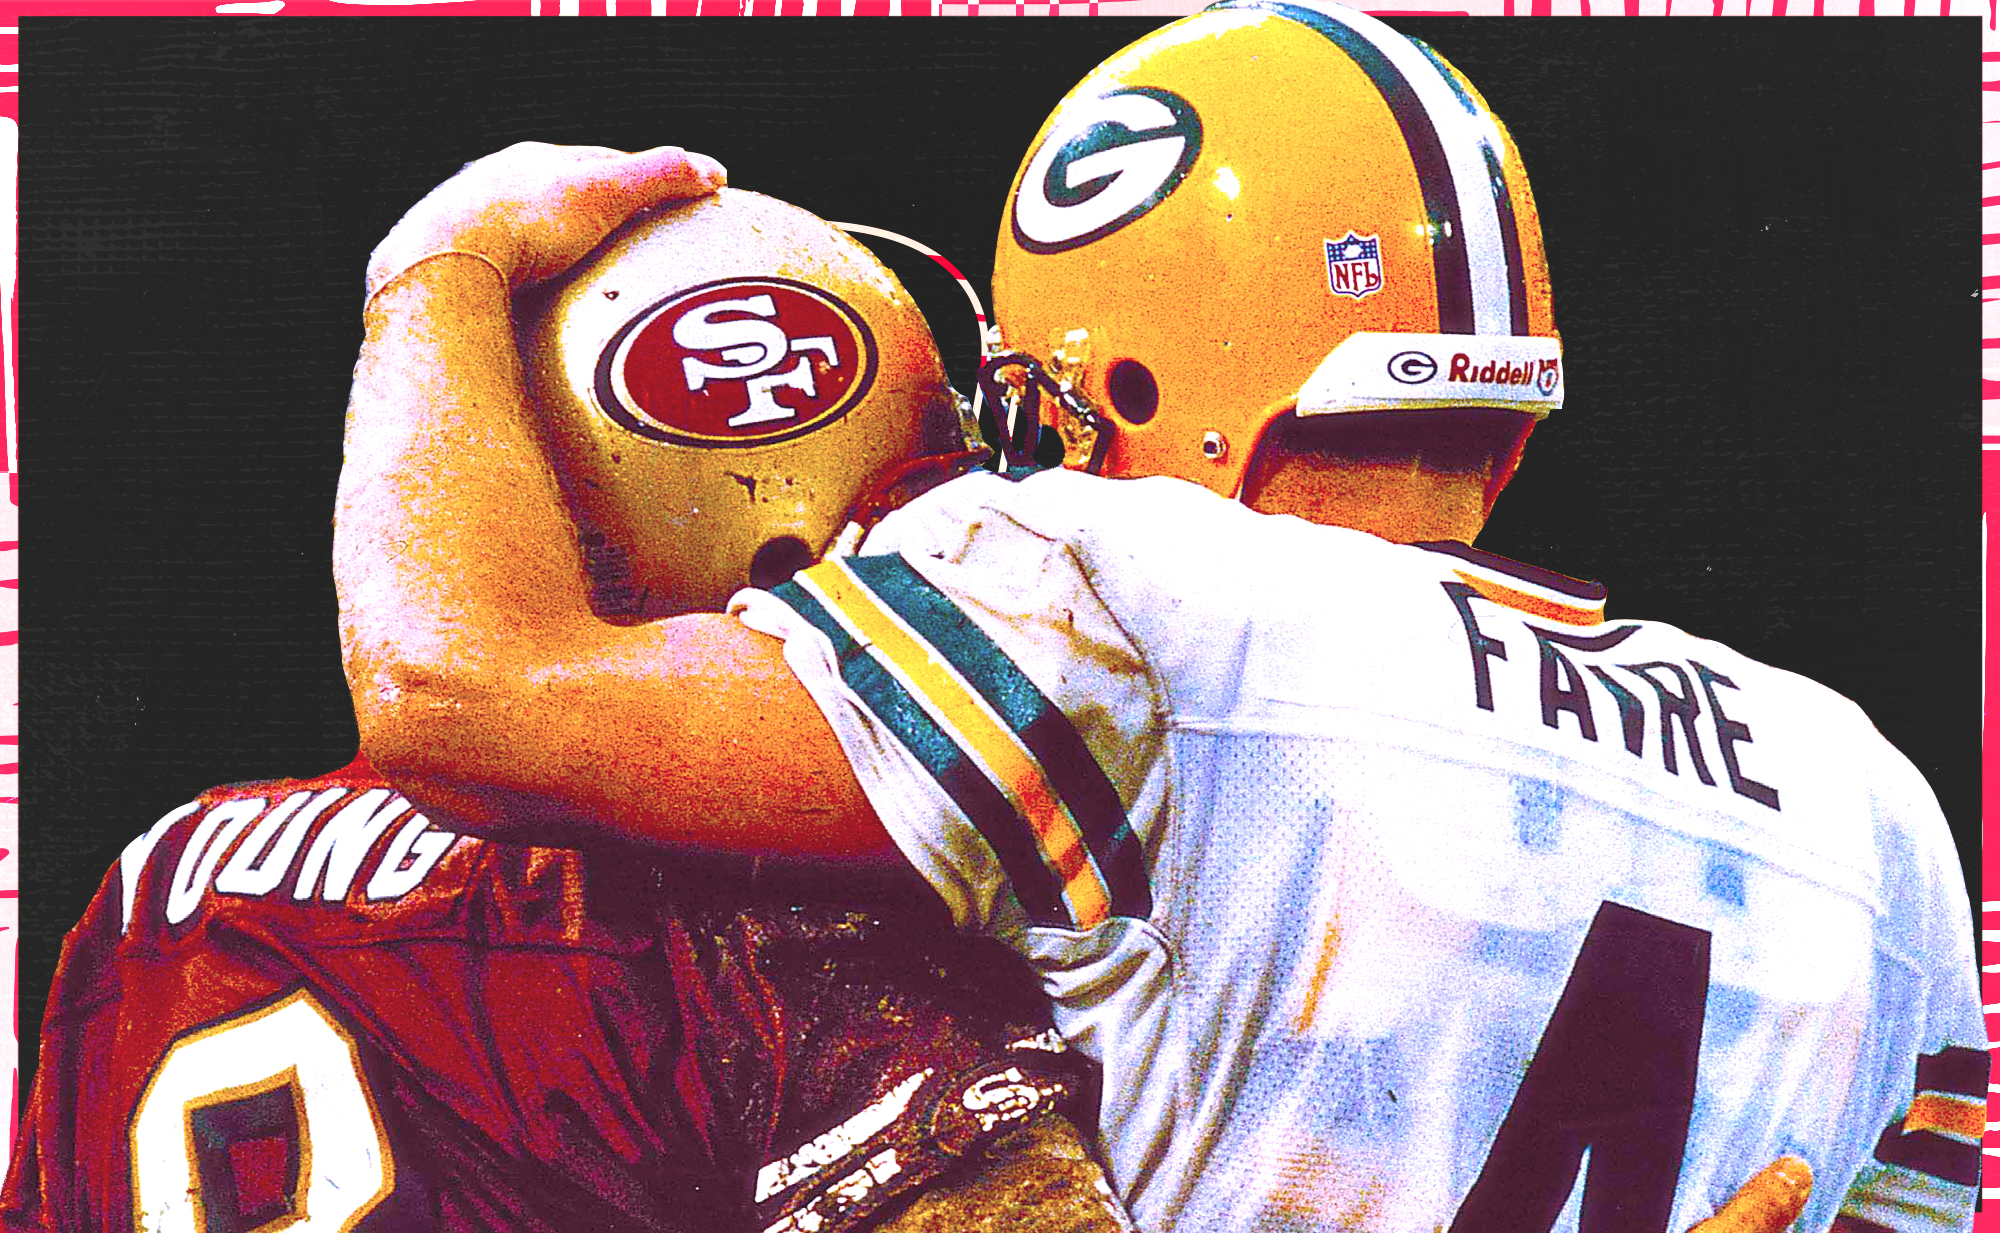 A look back at the intense playoff history between the 49ers and Packers